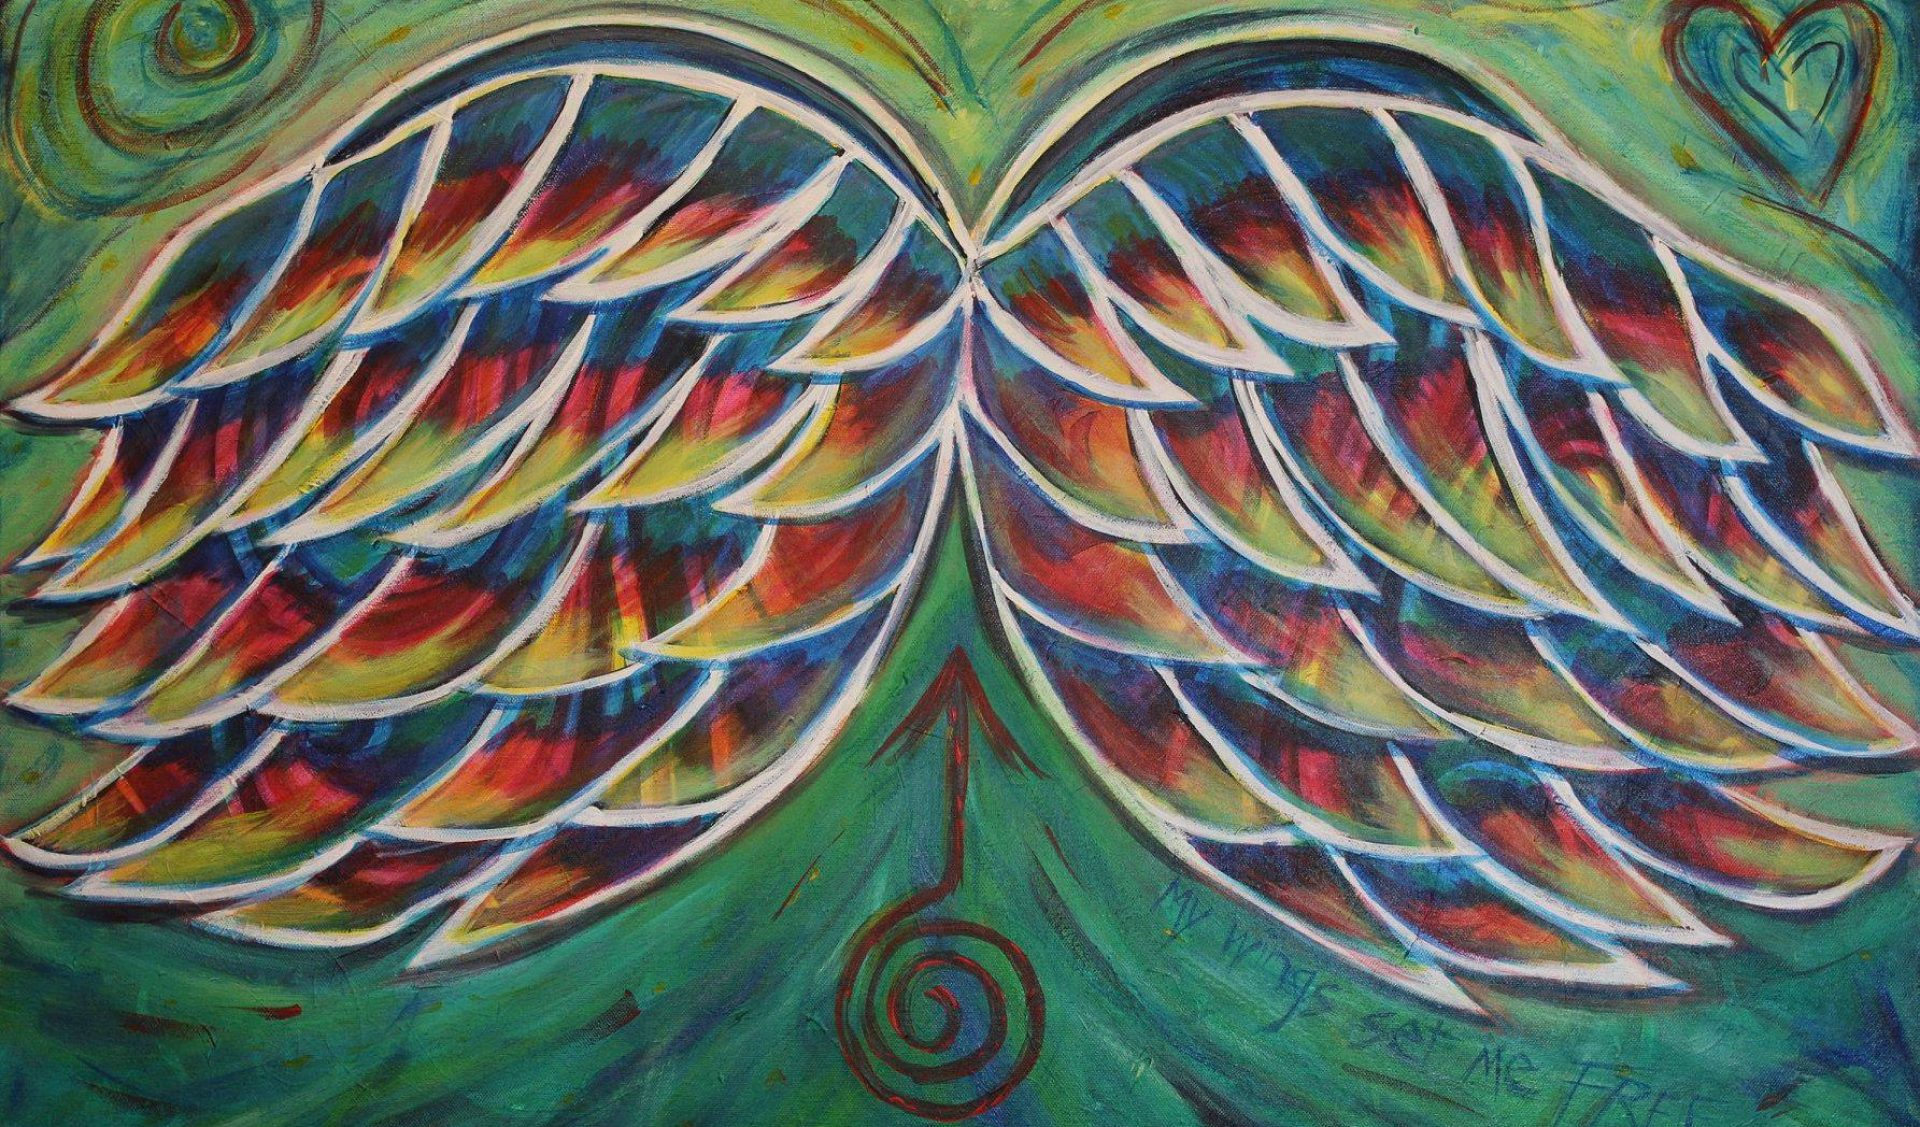 ~ Mosaic Healing Arts Institute ~